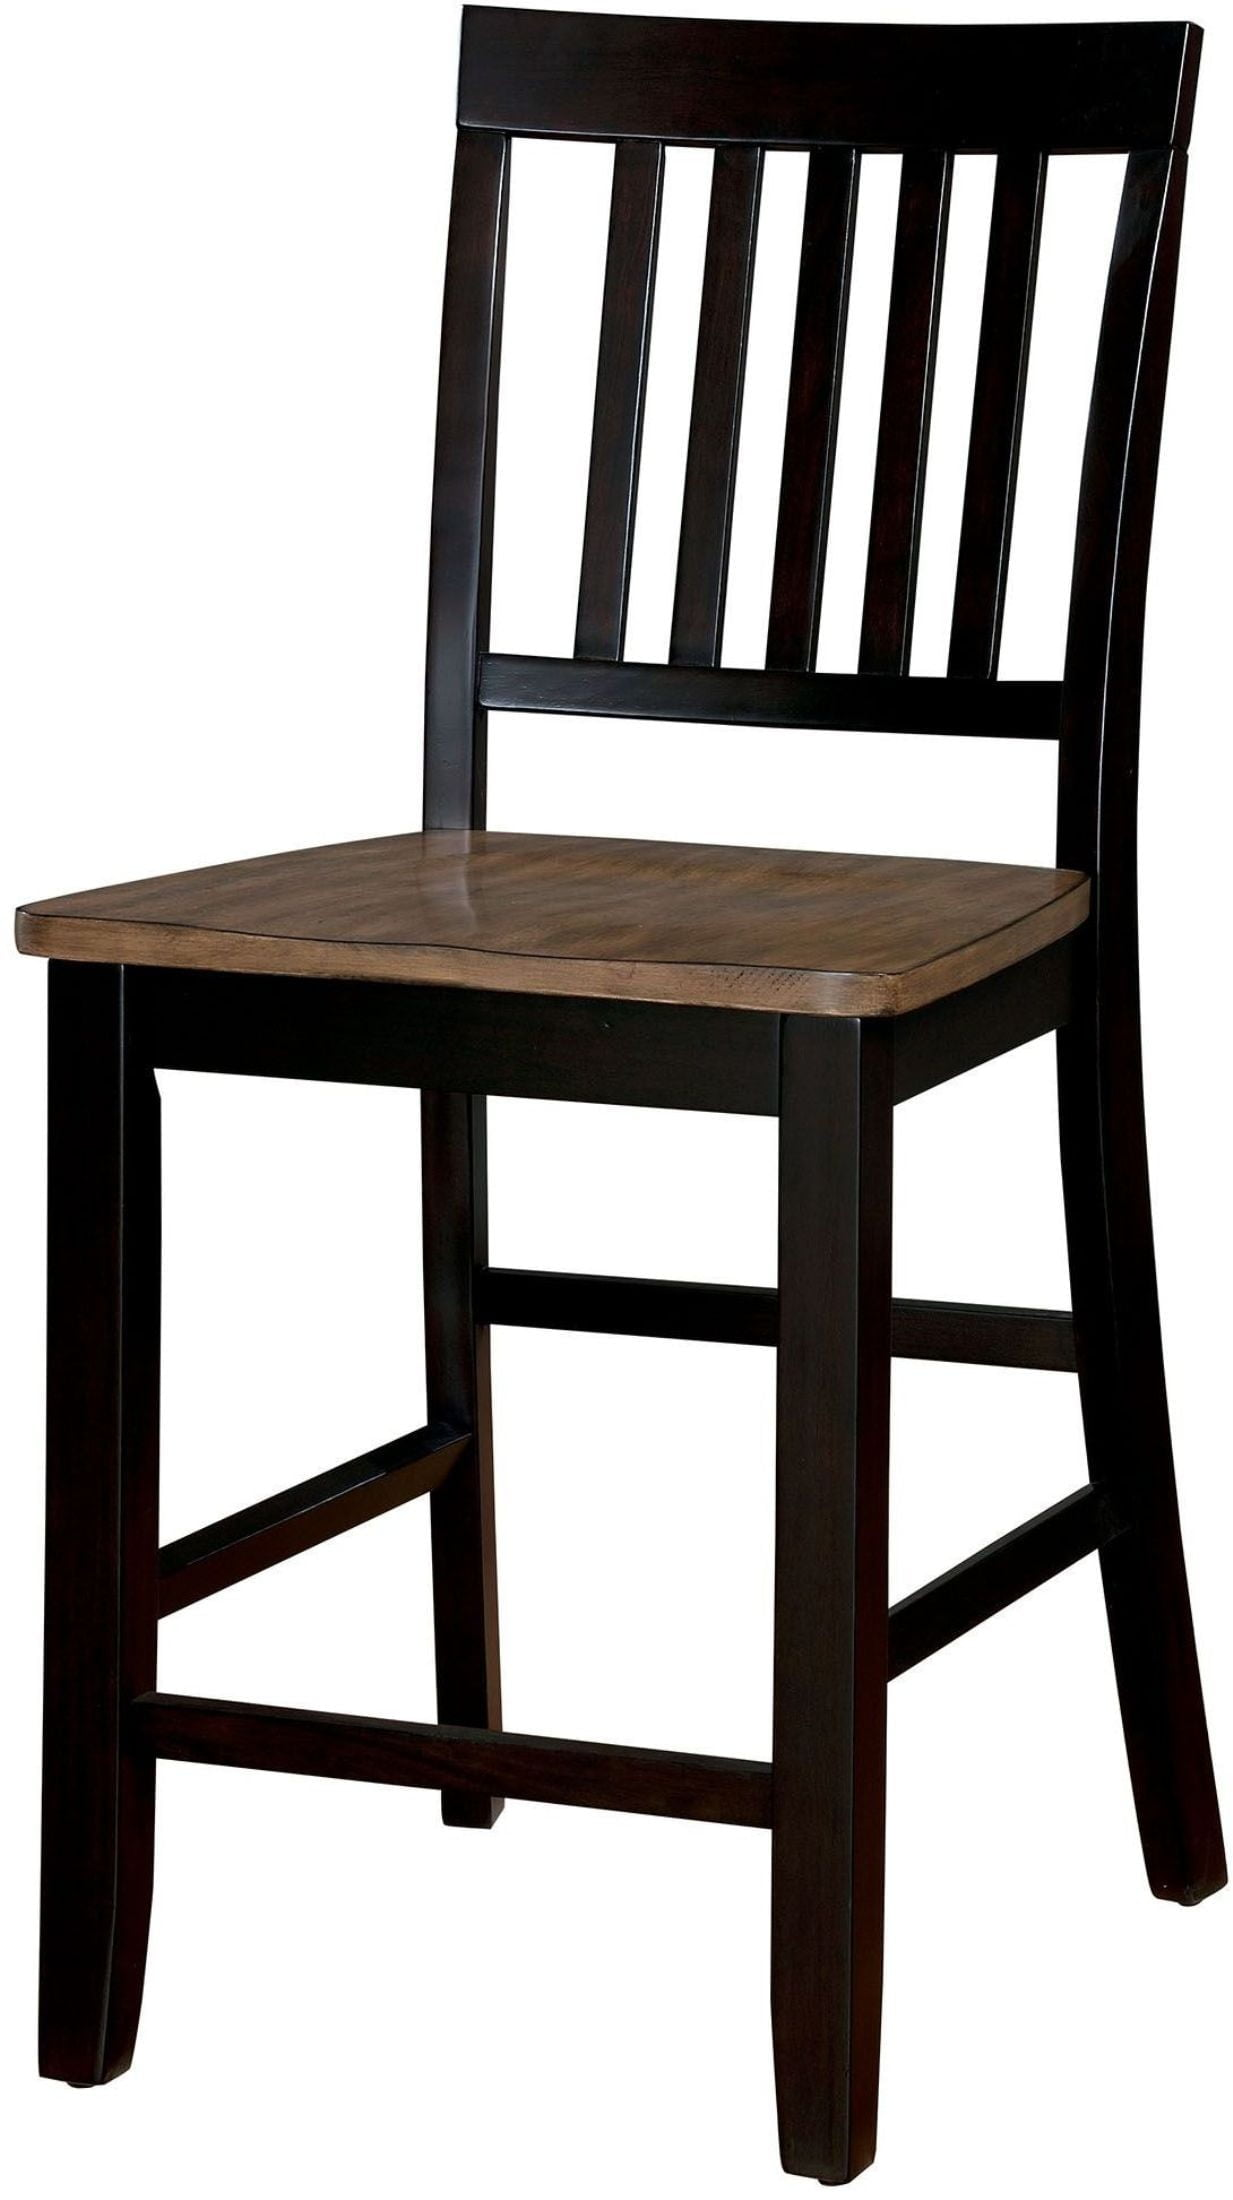 Izidora Rustic Oak And Espresso Counter Height Chair Set Of 2 From  # Muebles Luan Arbo